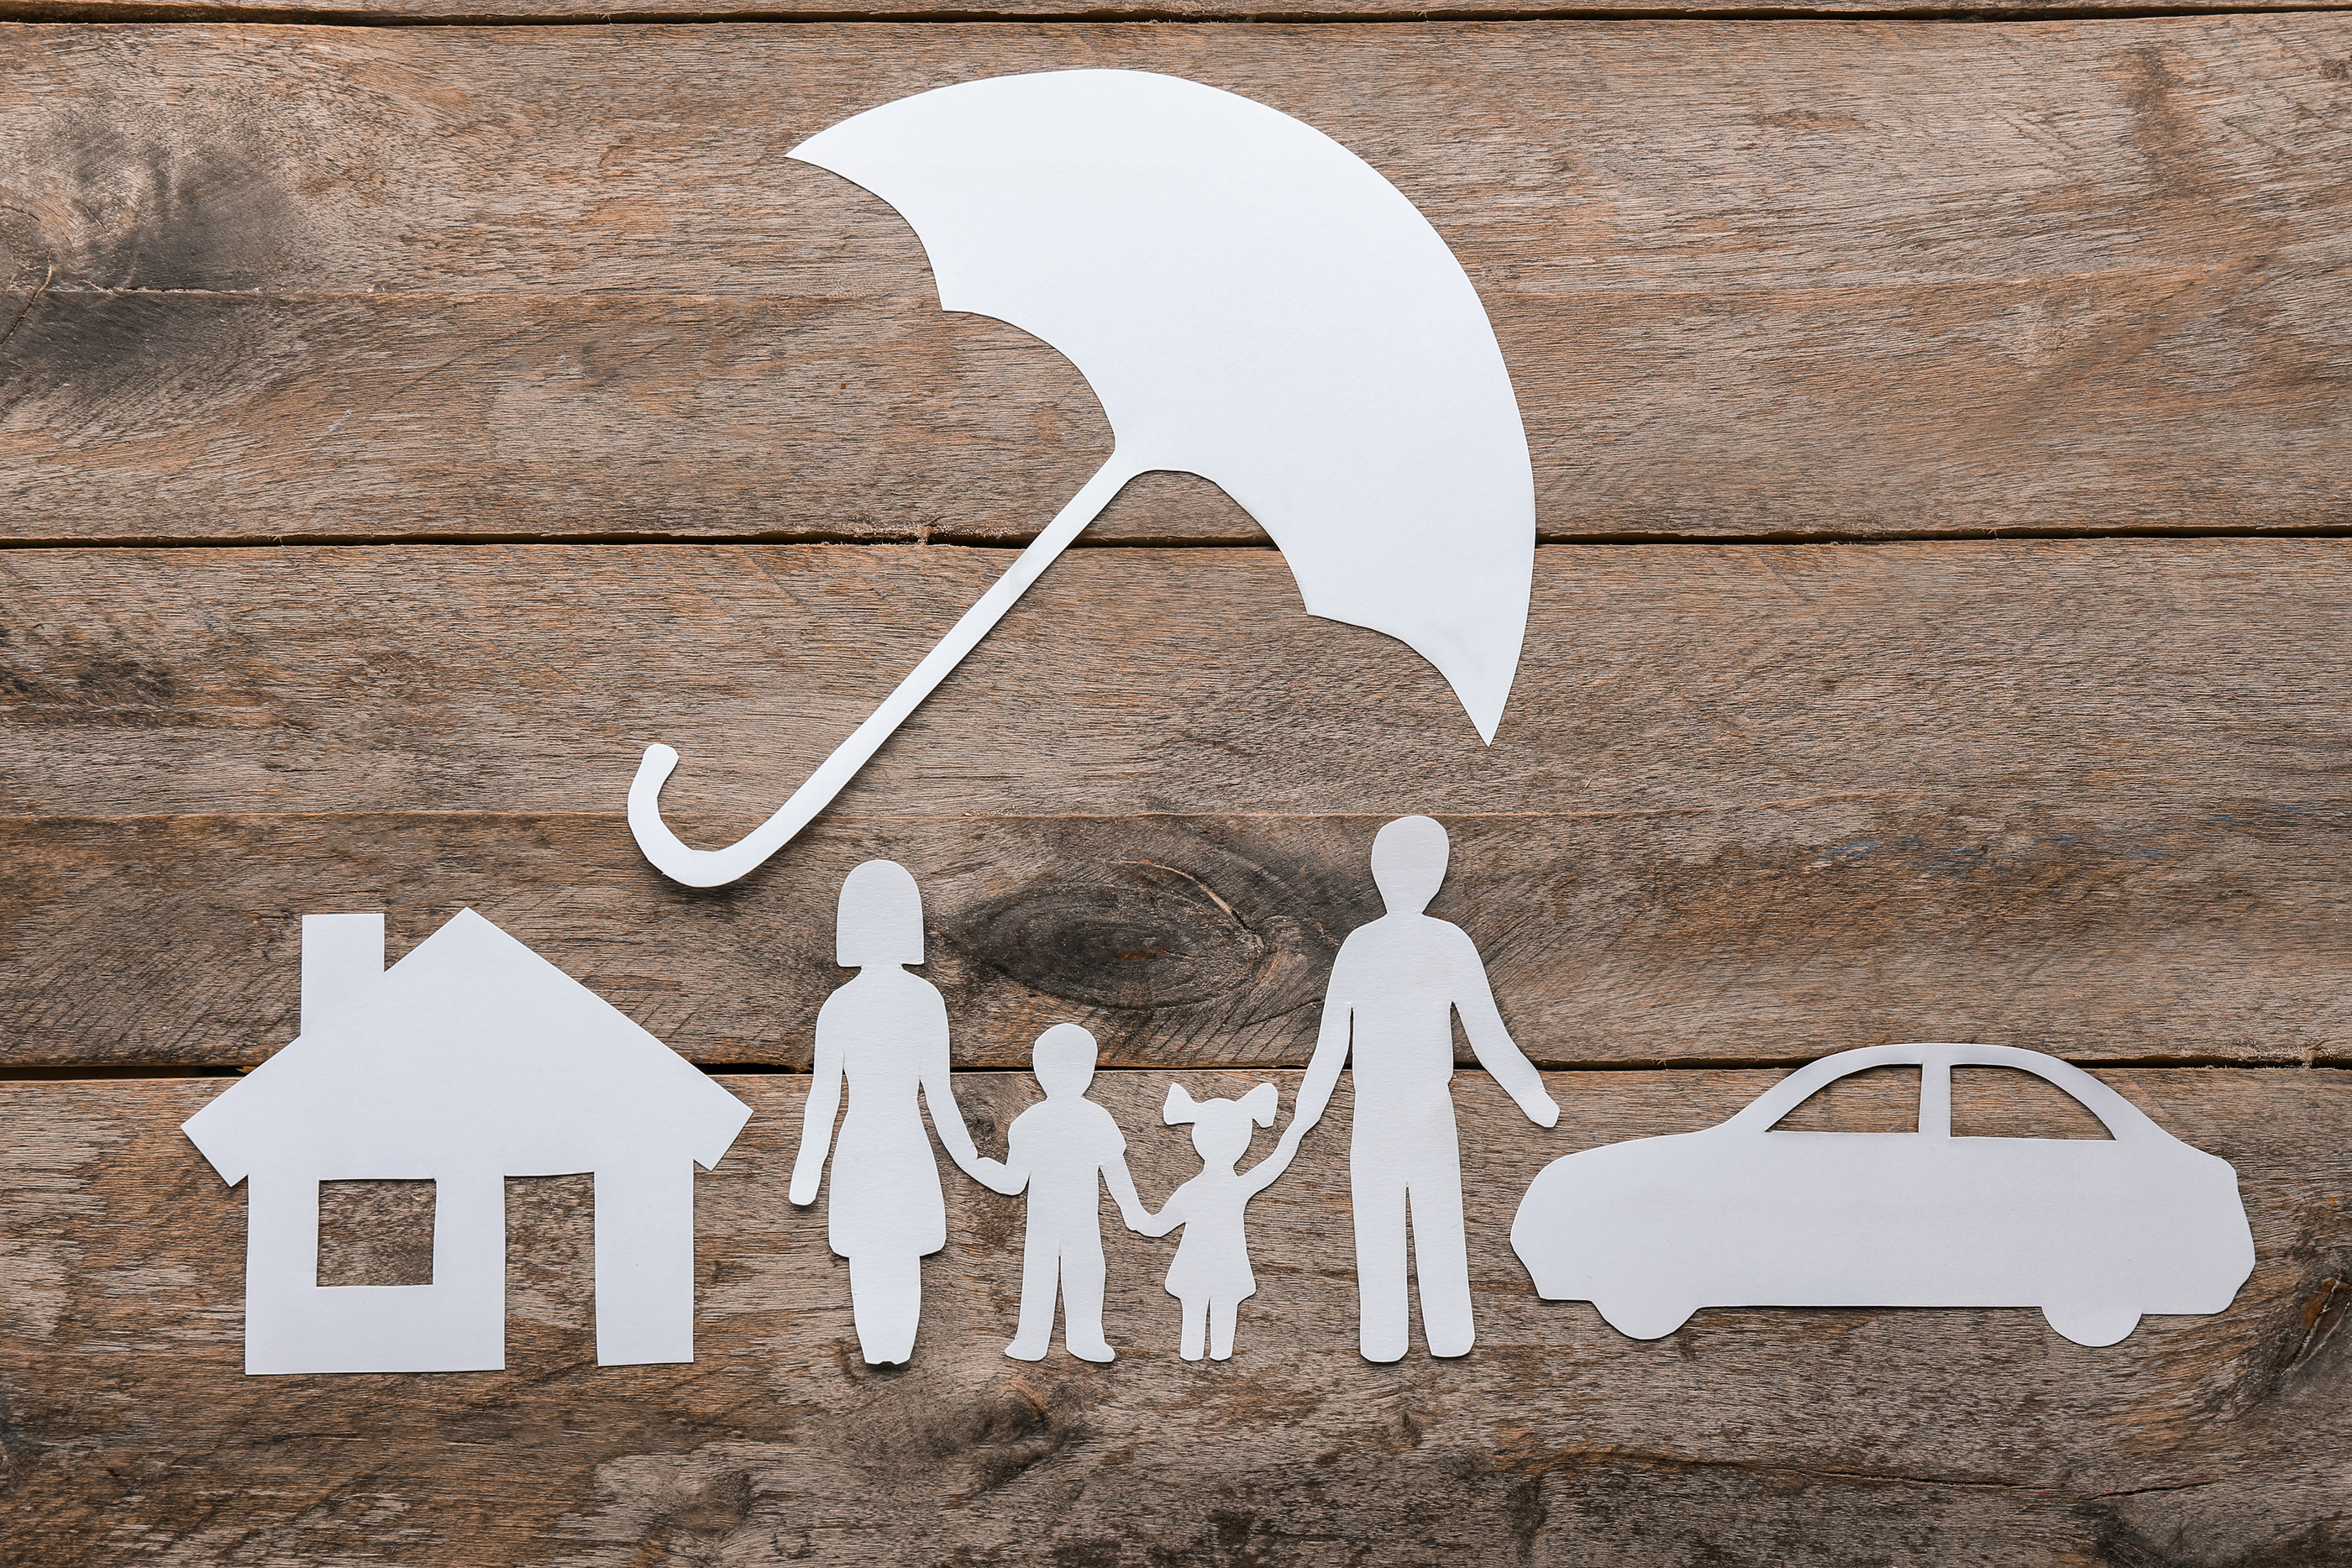 Paper silhouette of family, umbrella, house and car on wooden background. Life insurance concept